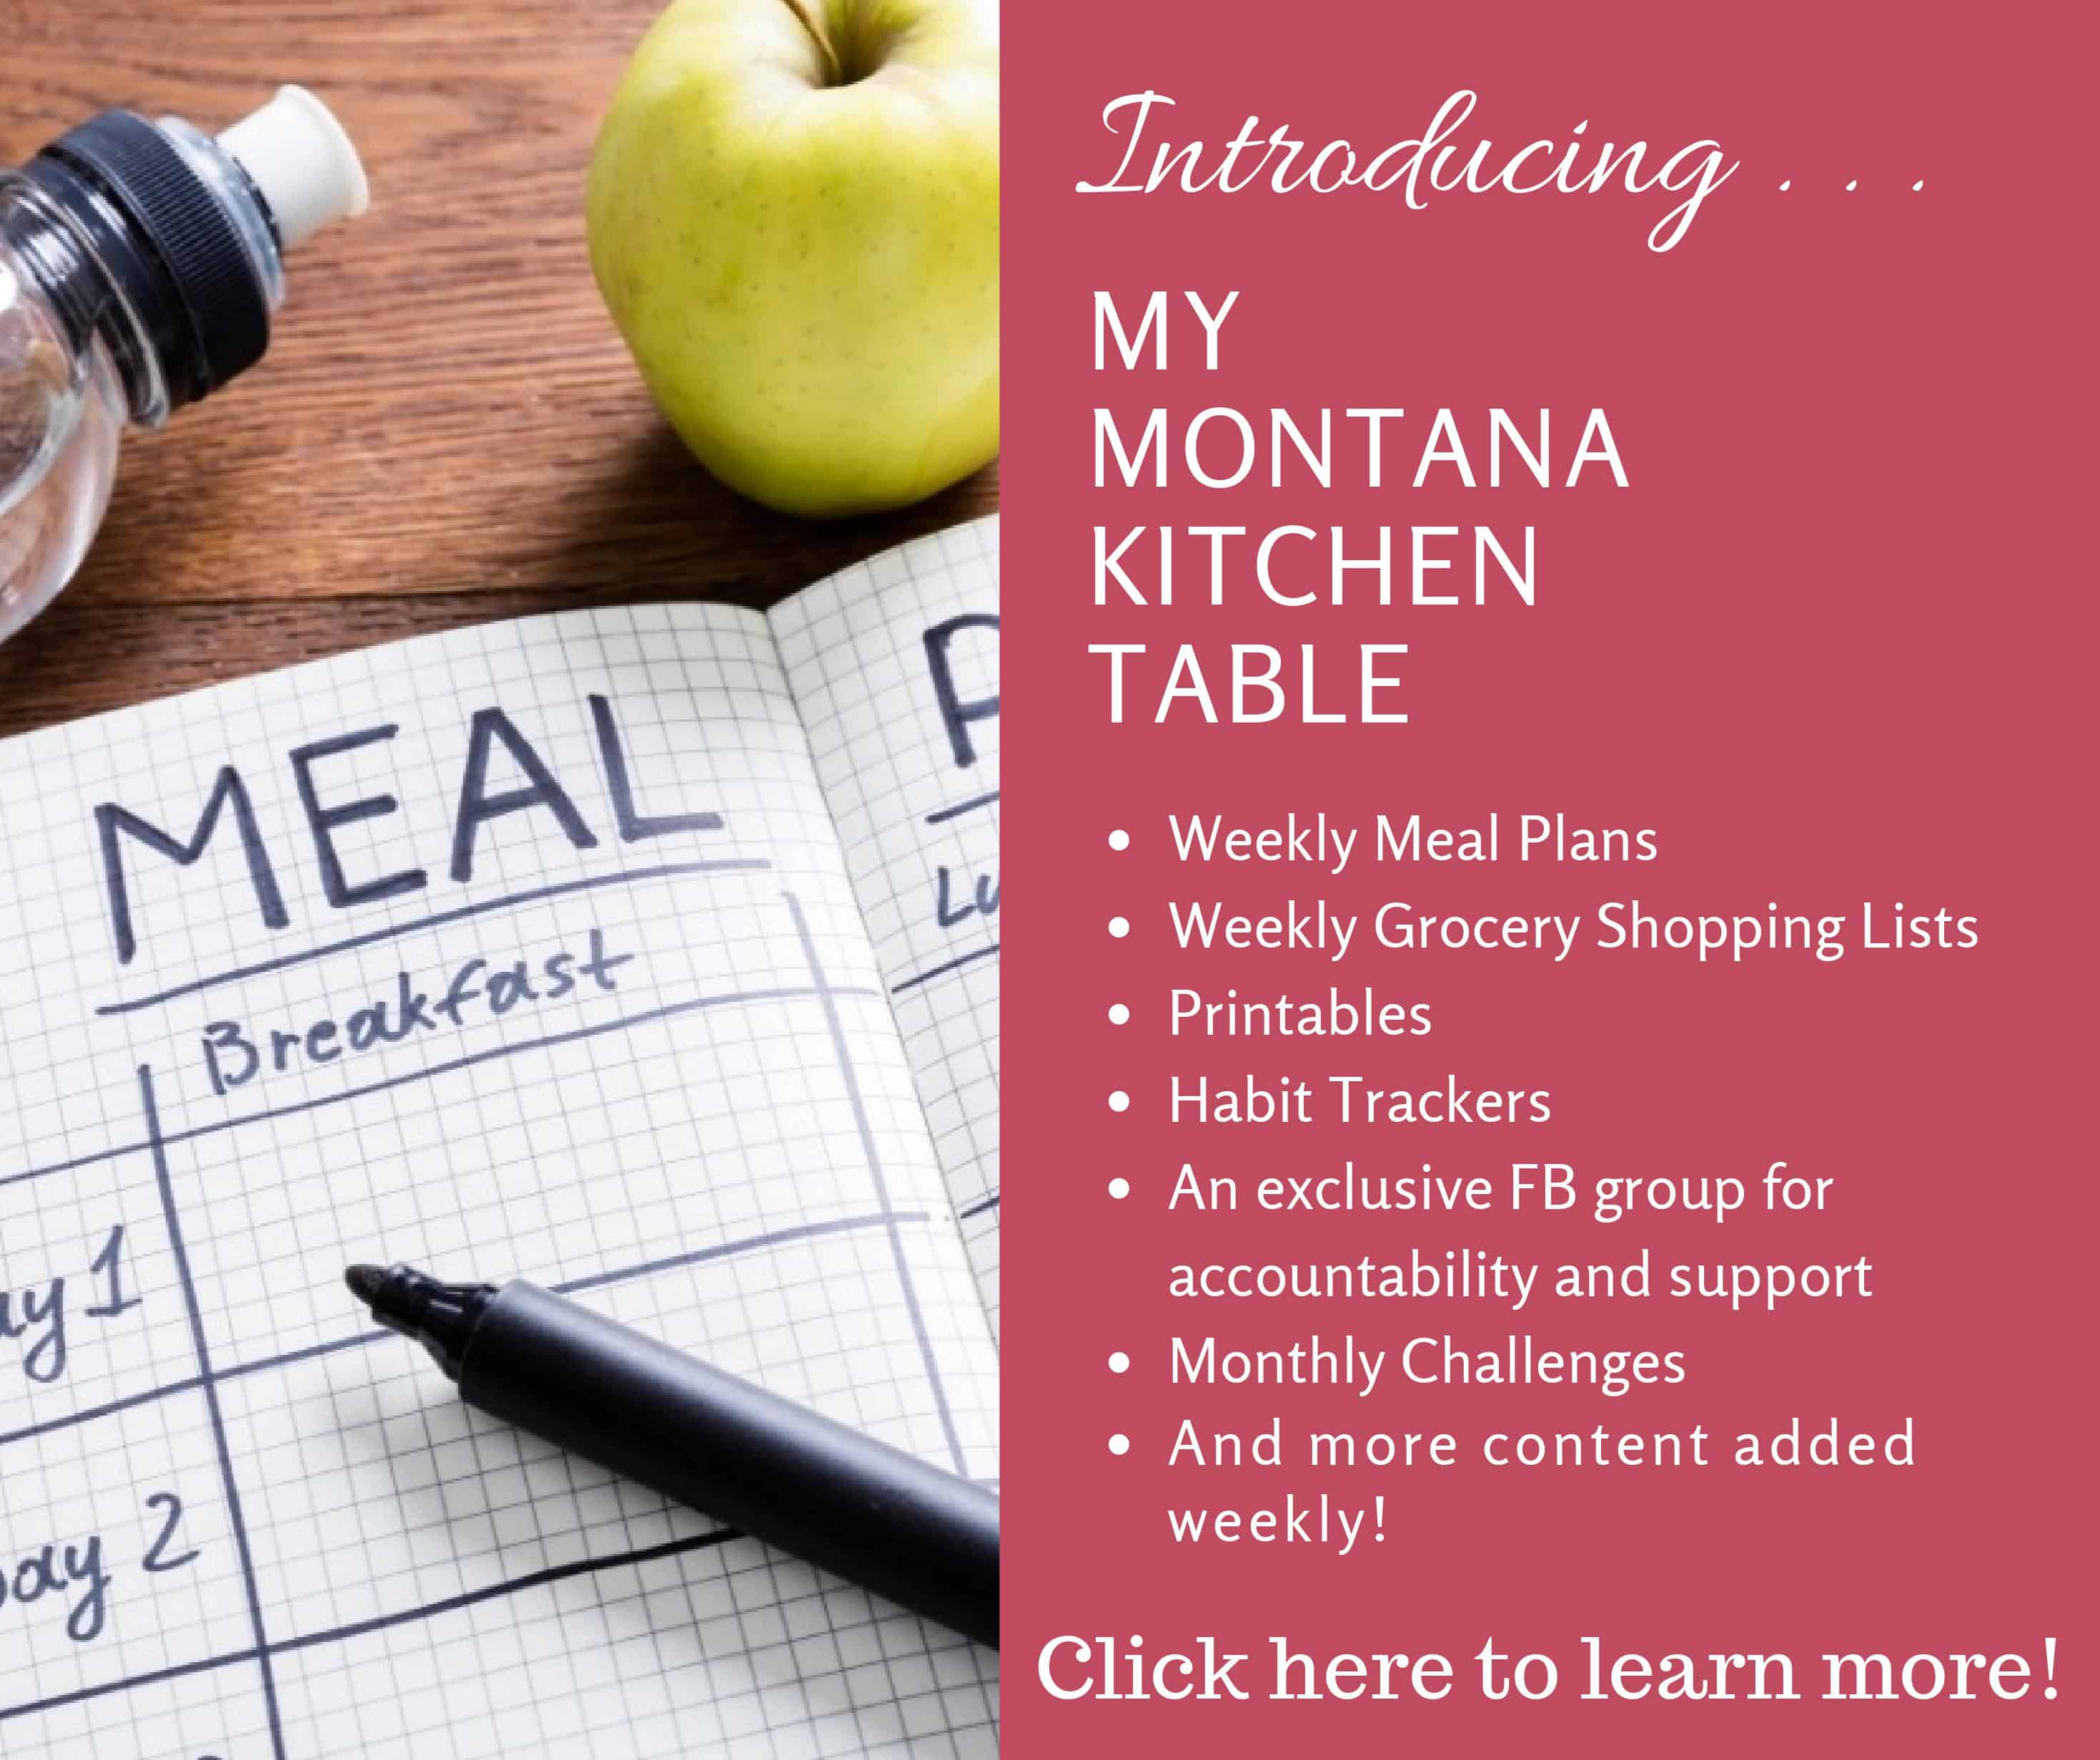 If you need accountability, or just want someone else to do all the work for you, then you need the My Montana Kitchen Table! #mealplans #menuplans #accountability #challenges #lowglycemicrecipes #challenges